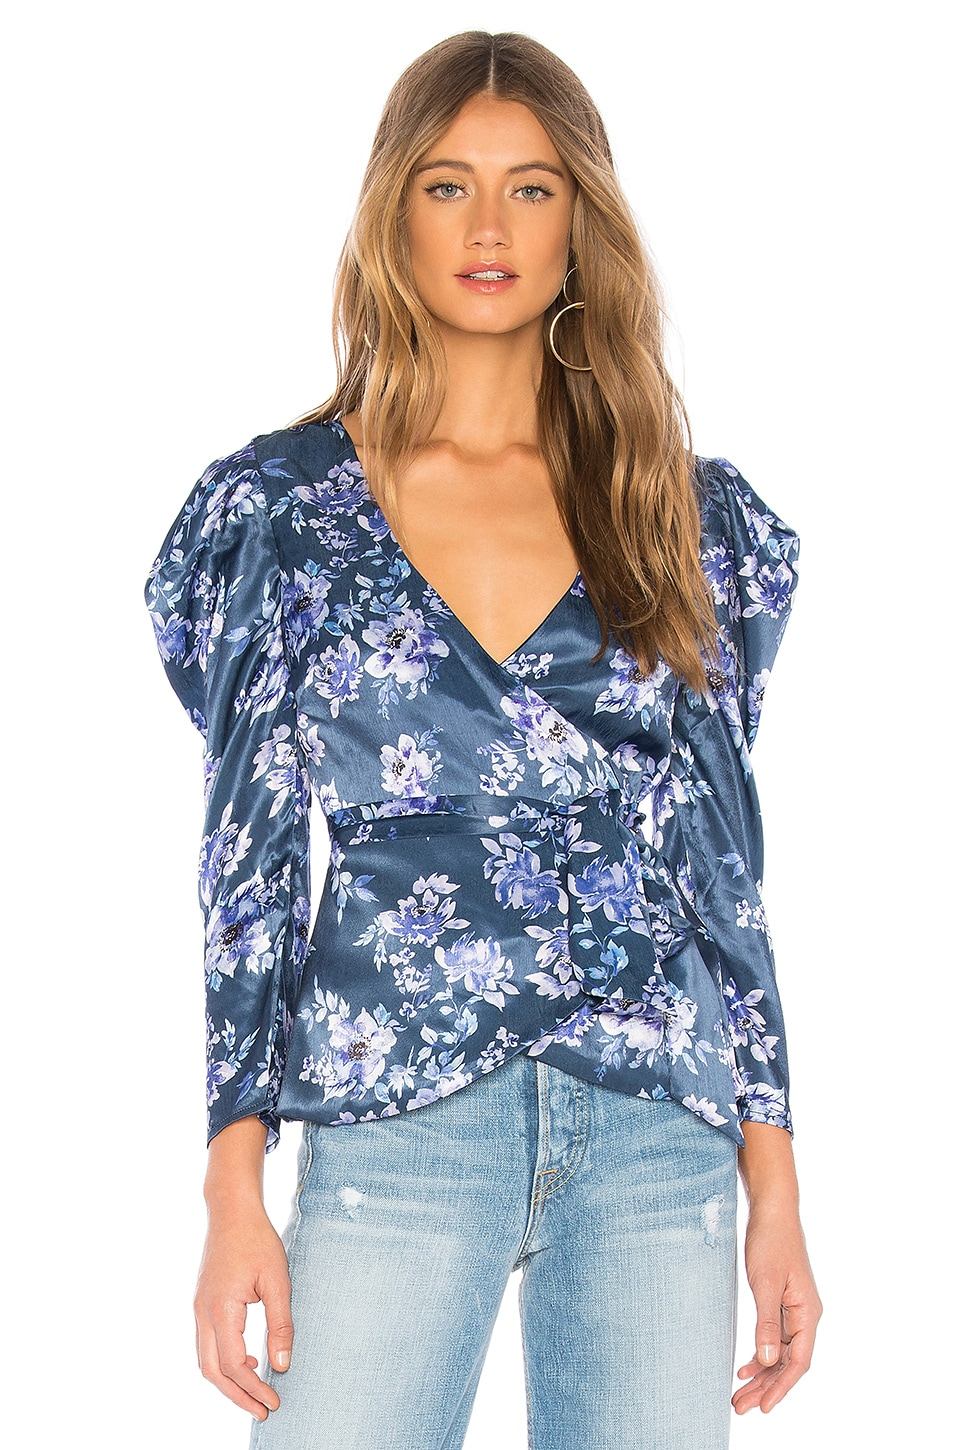 MAJORELLE Baylor Top in Rainwater Blue